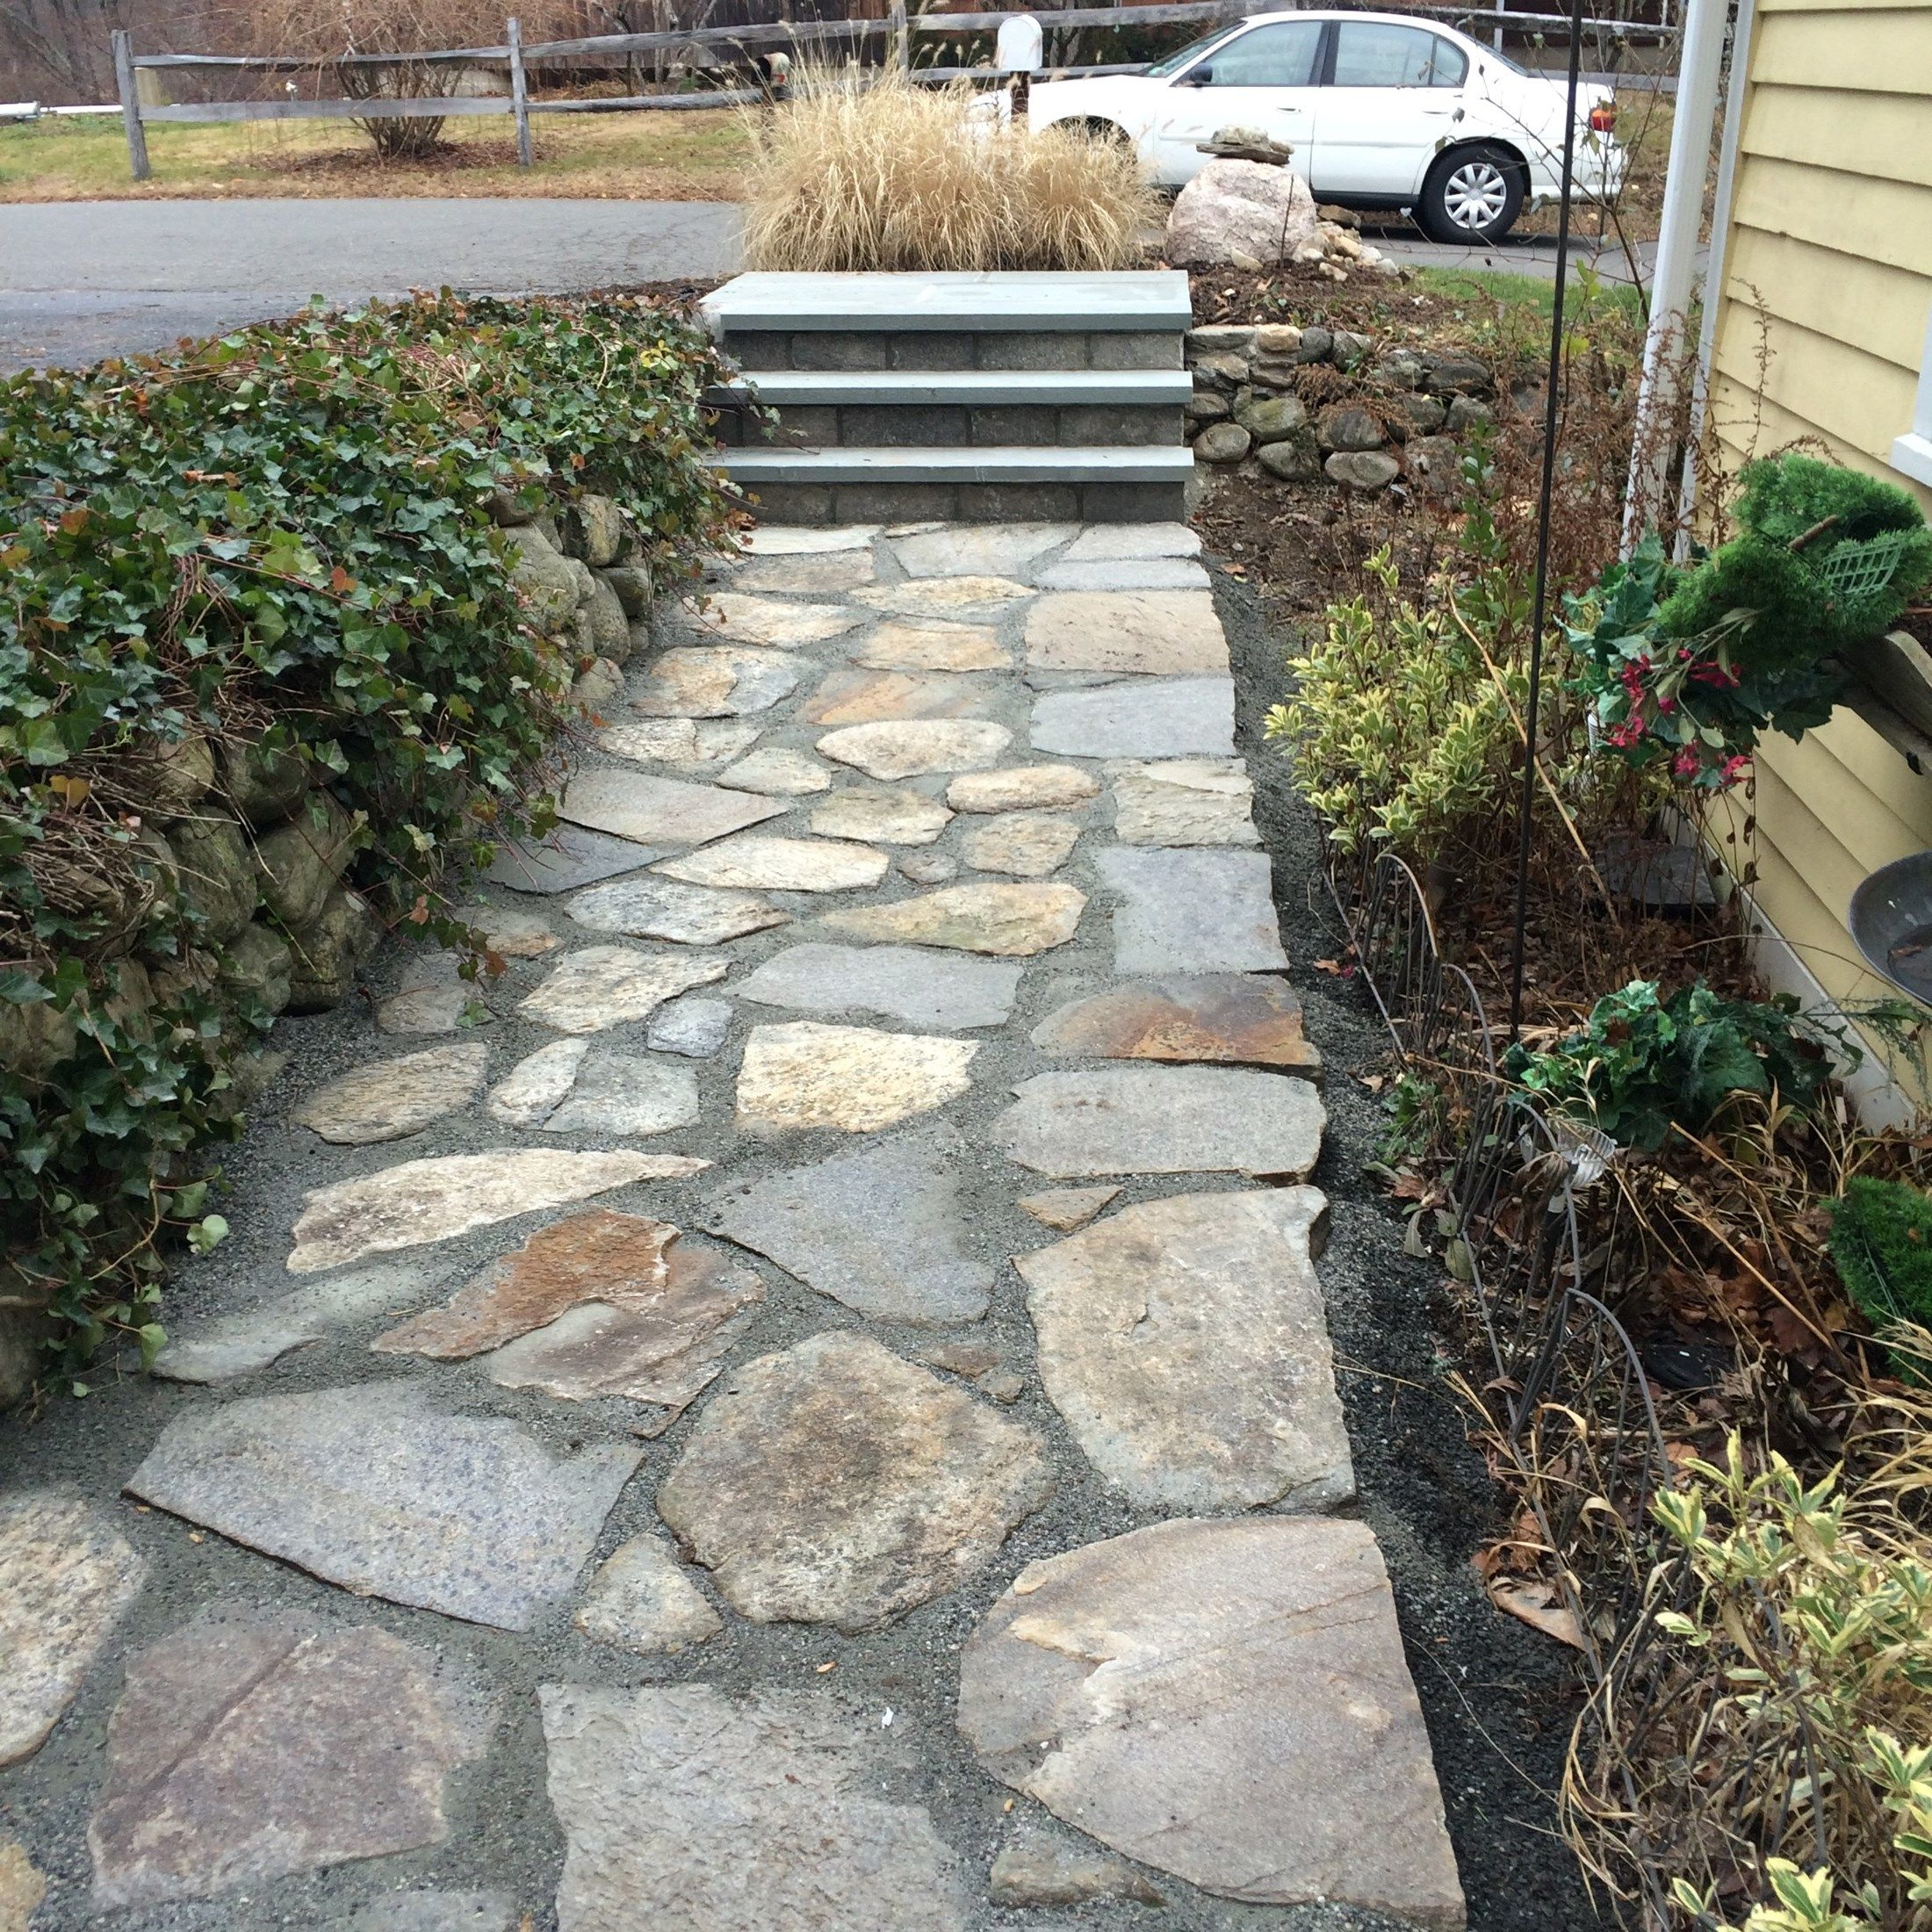 Re-pointed Patio Space in Wilton - Picture 3784